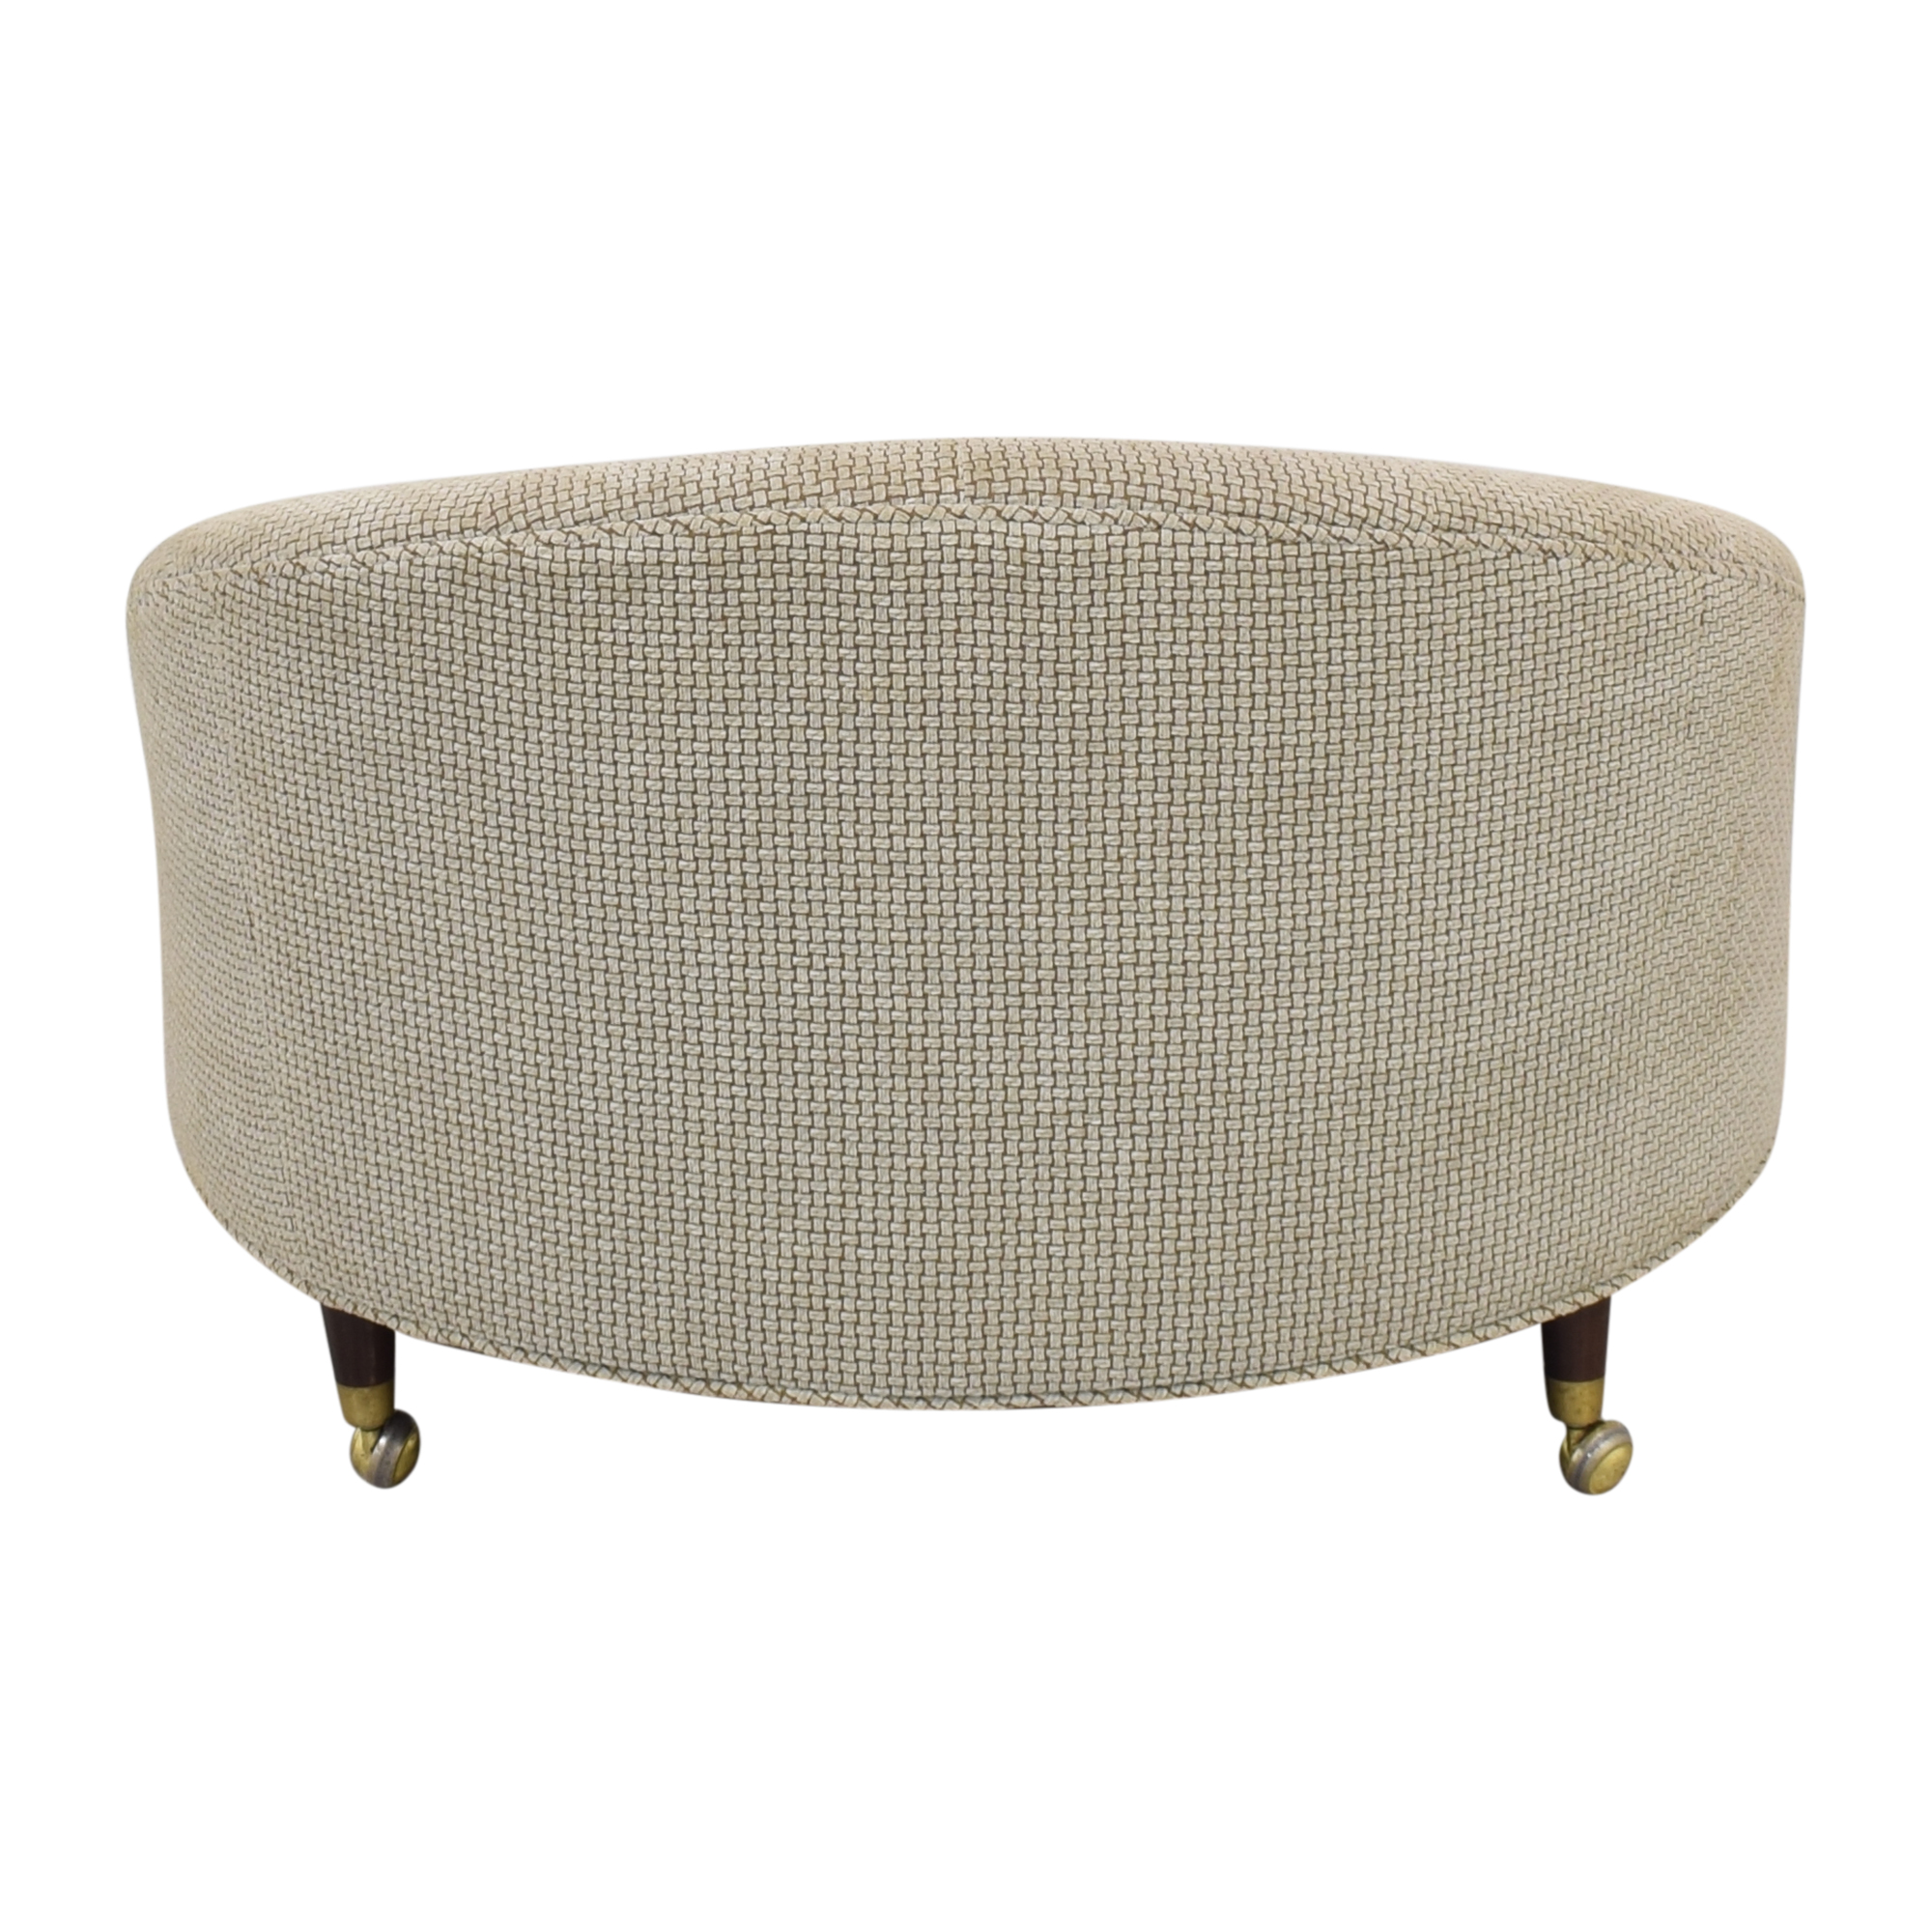 Tufted Barrel Lounge Chair discount